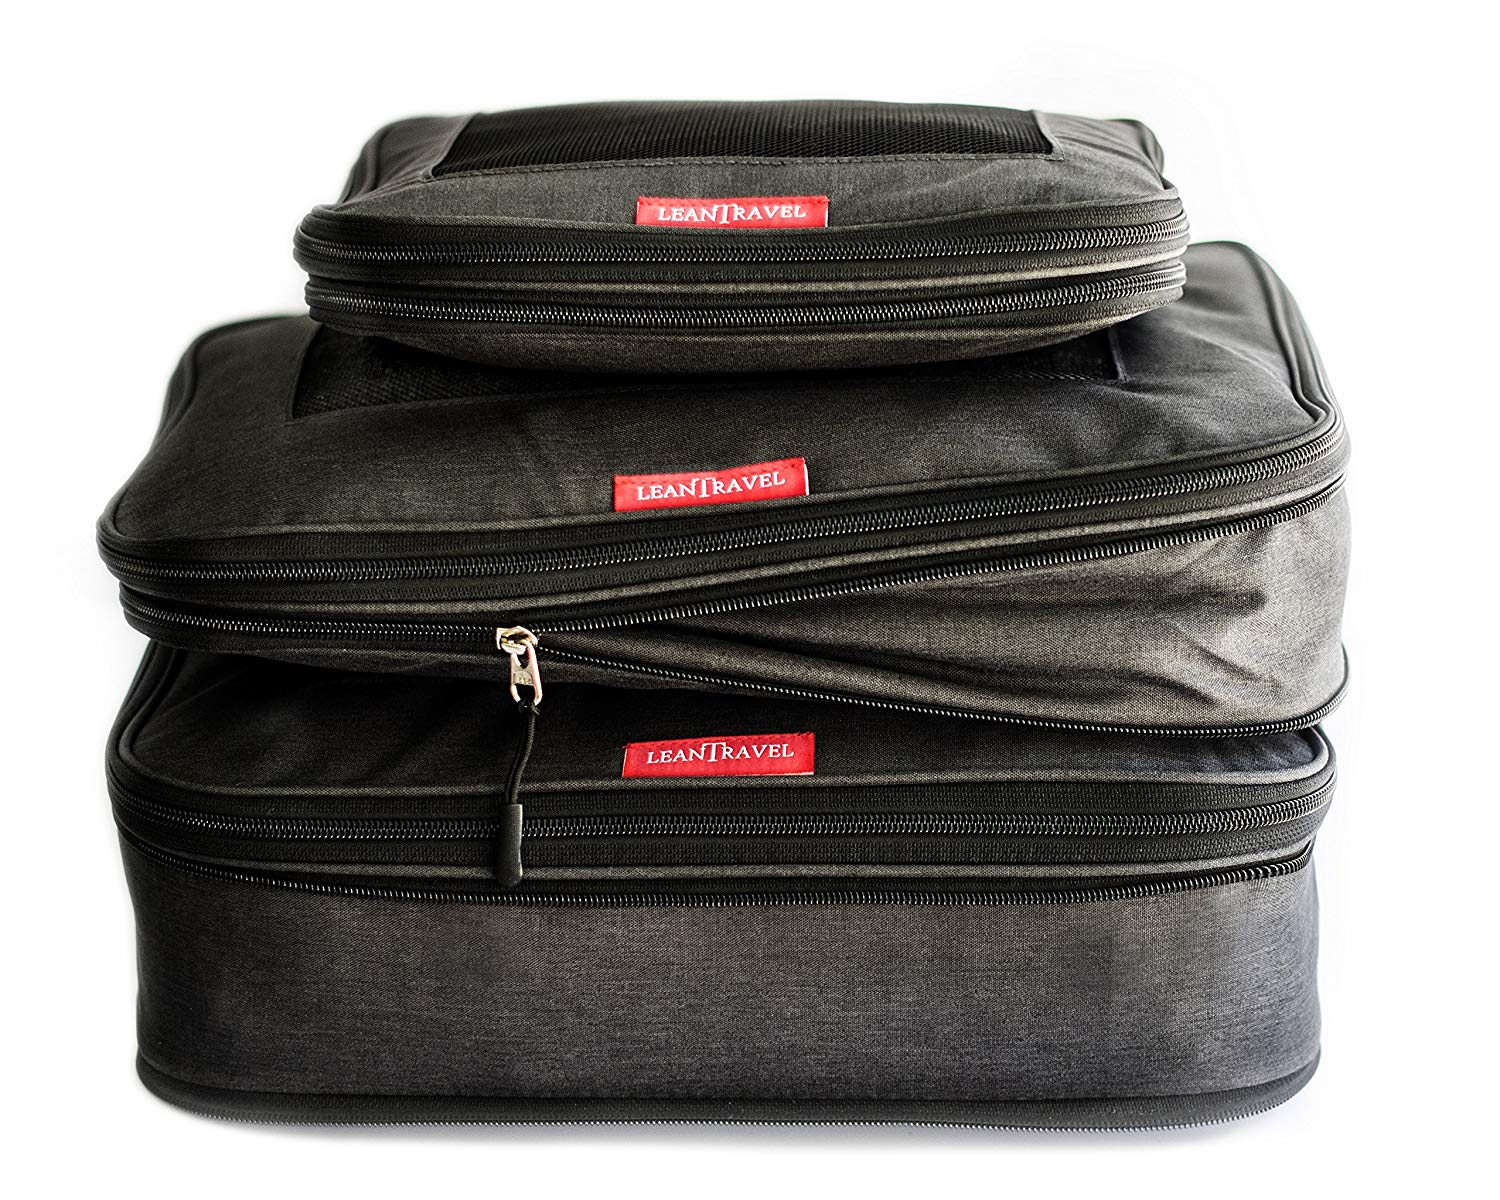 Lean Travel Packing Cubes